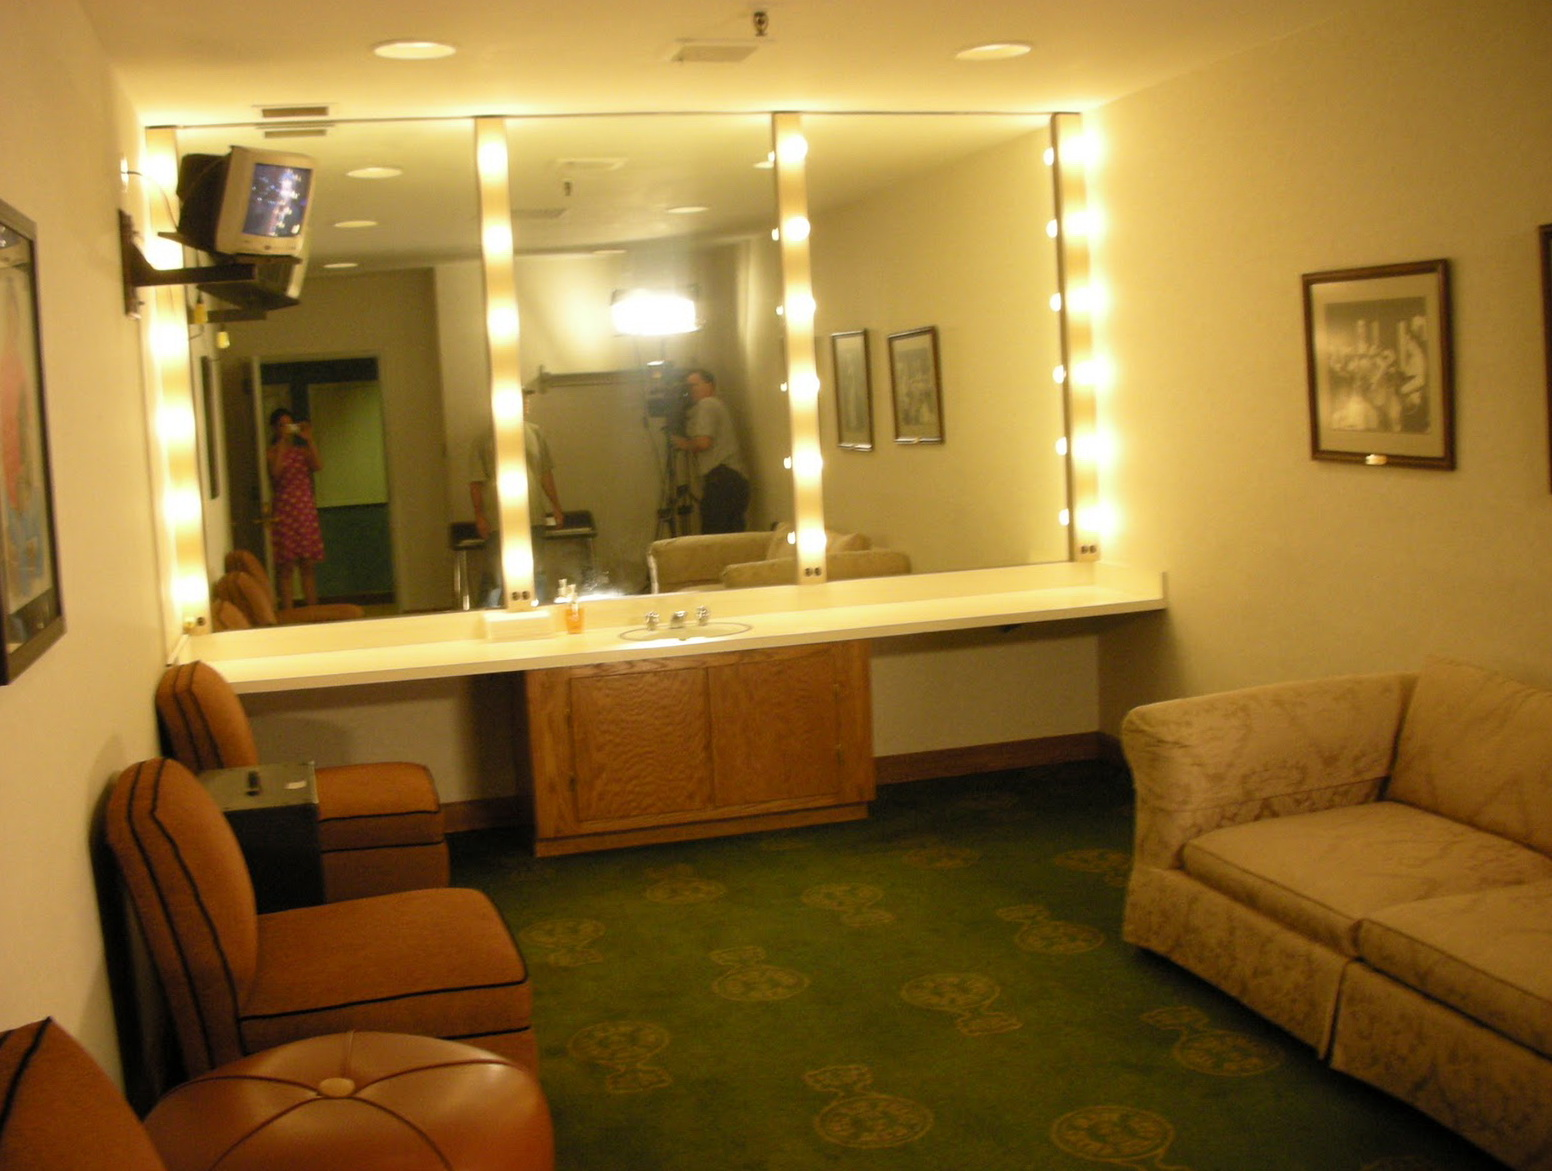 Stage Dressing Room Mirrors  Home Design Ideas